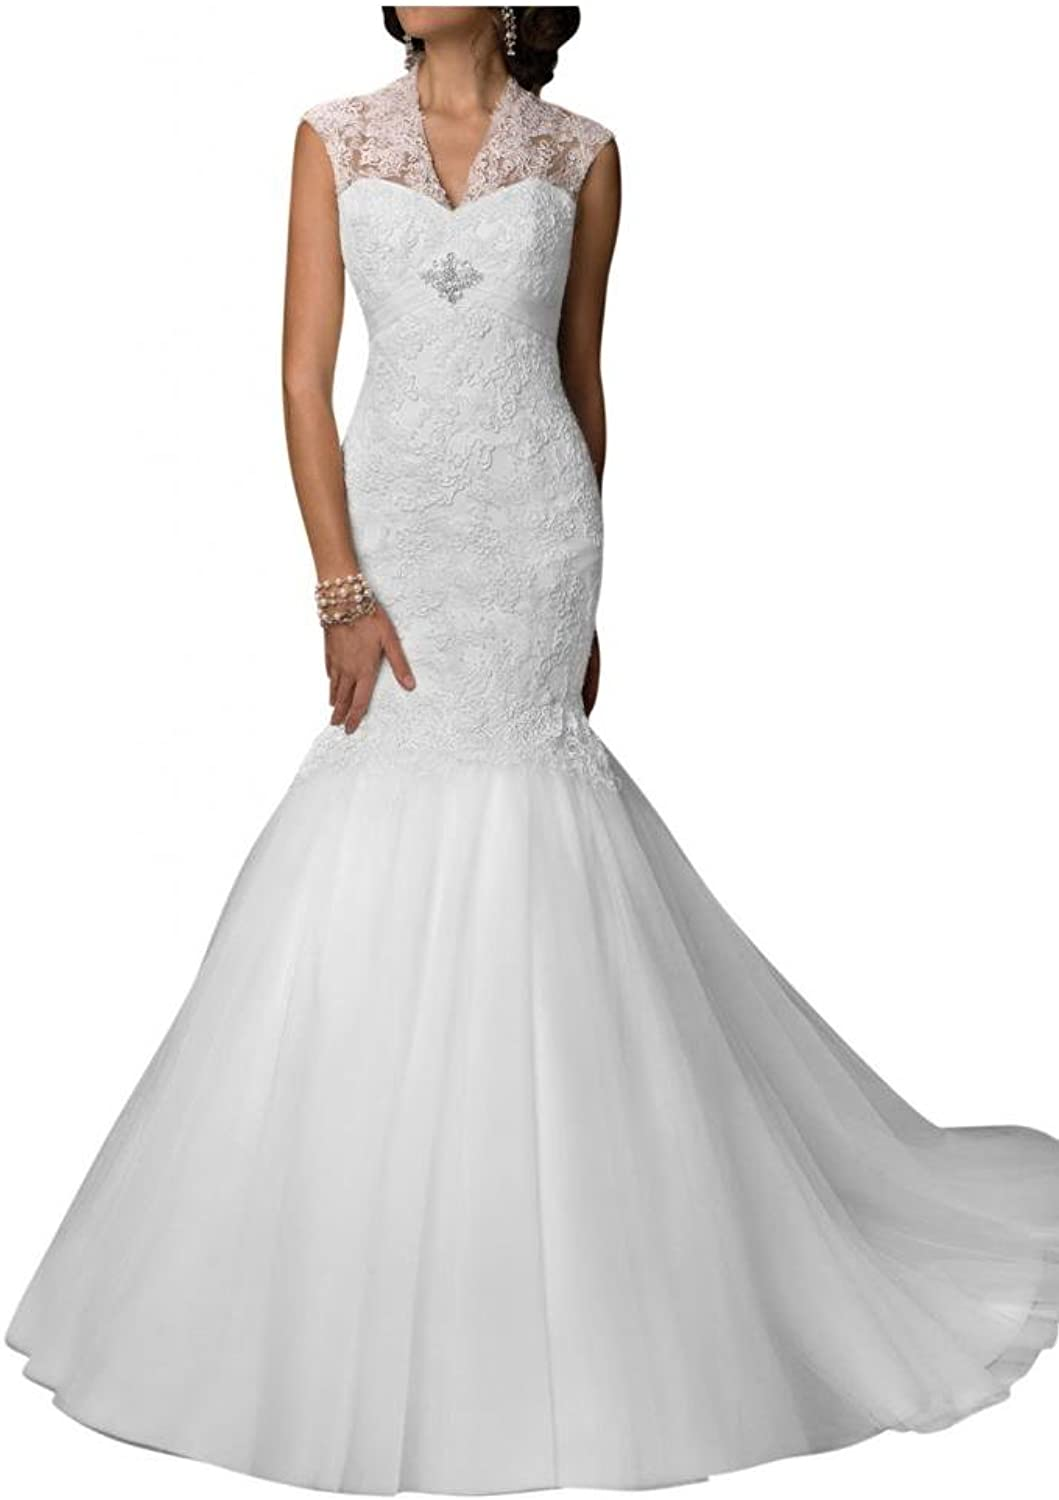 Angel Bride 2016 New Dresses Mermaid Wedding Dresses VNeck Tulle